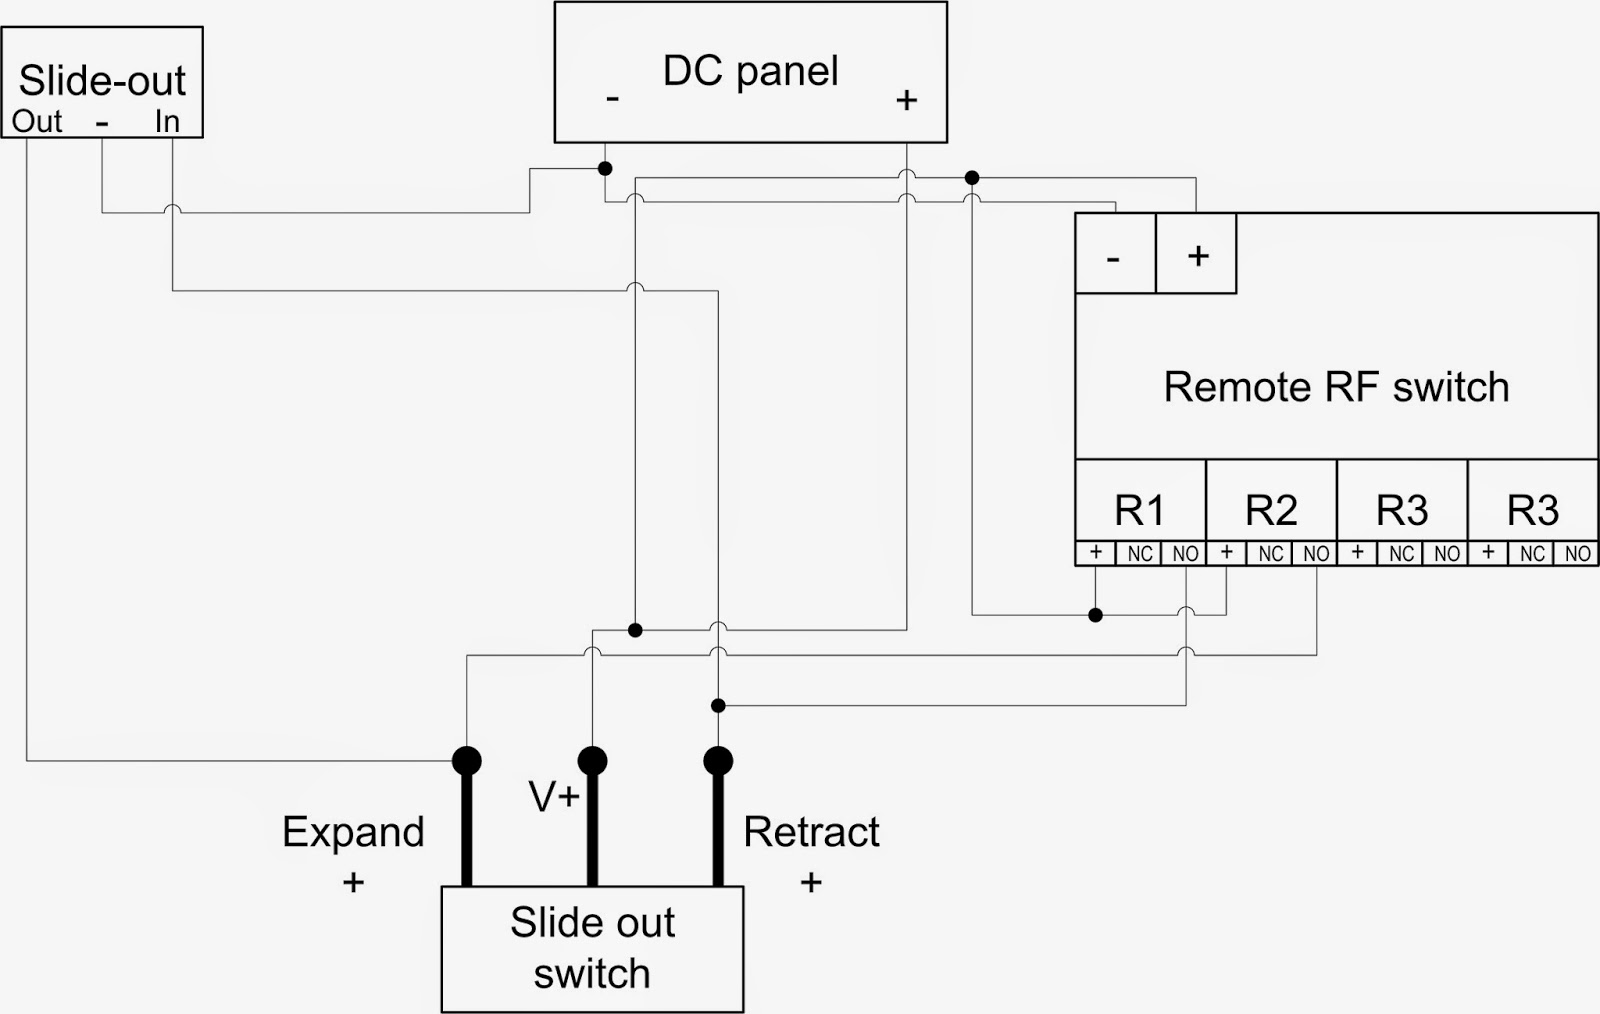 remoteRF my rv mods remote control for slide out rv slide out switch wiring diagram at reclaimingppi.co